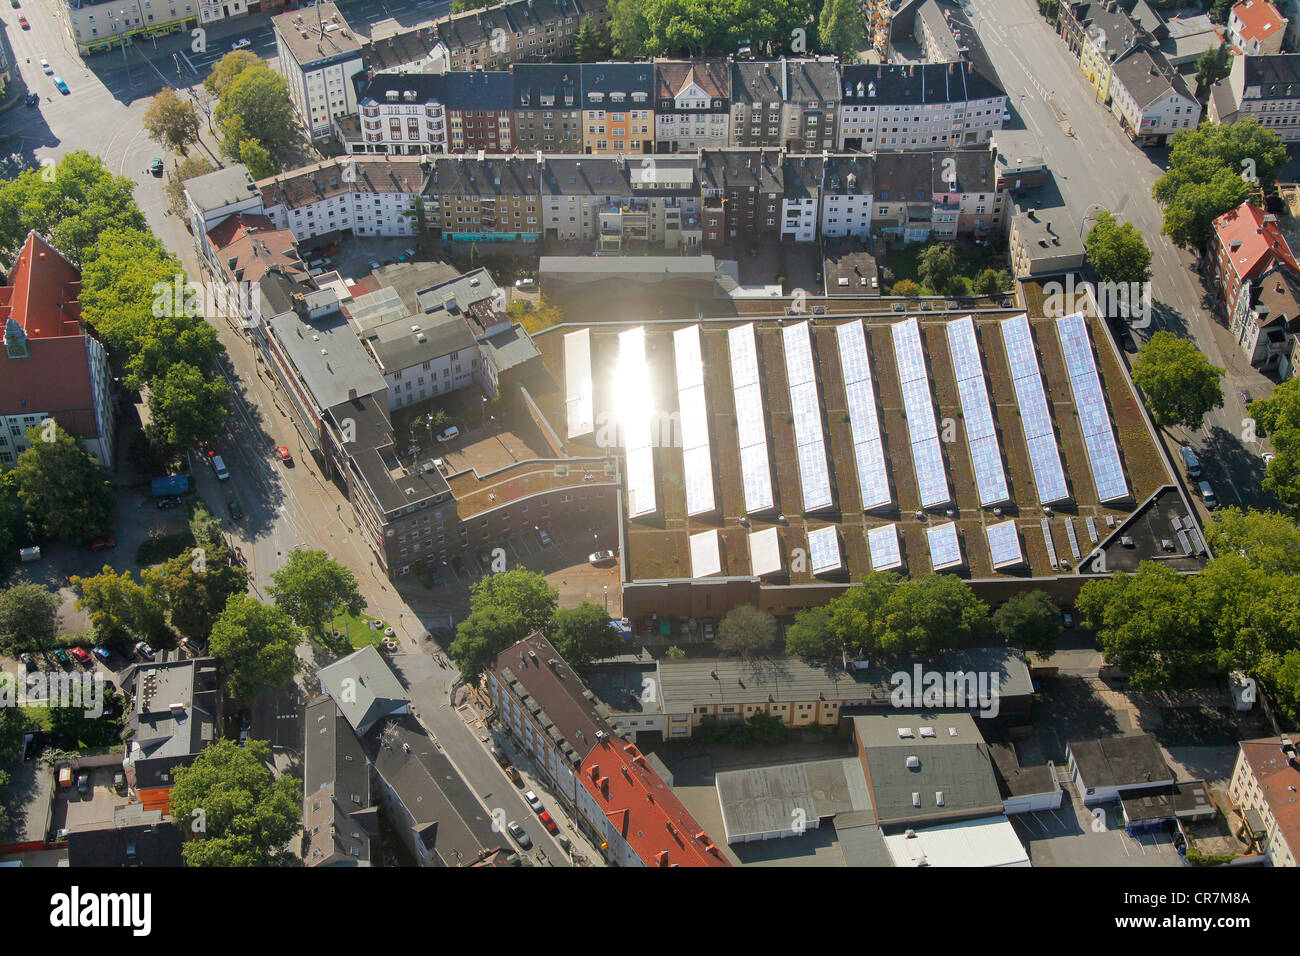 Aerial View Bogestra Tram Depot With Solar Panels On Roof Stock